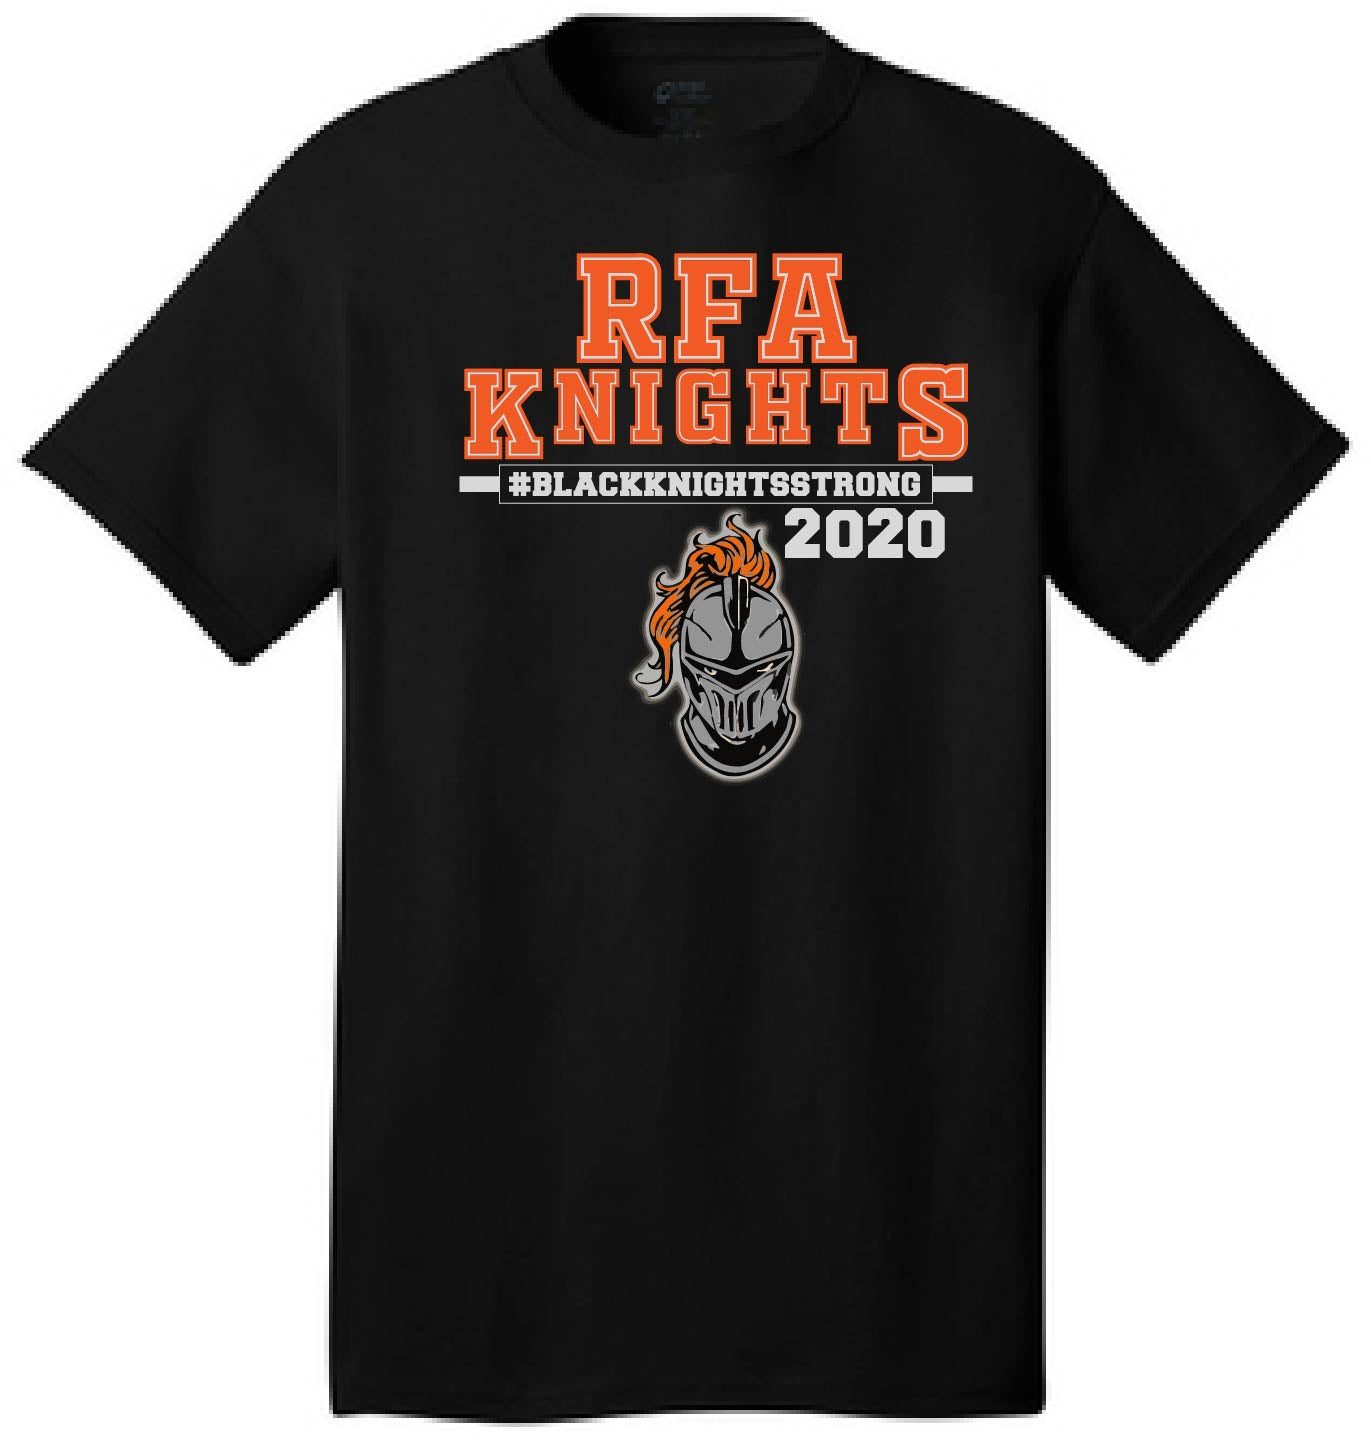 RFA Knights Strong T-Shirt